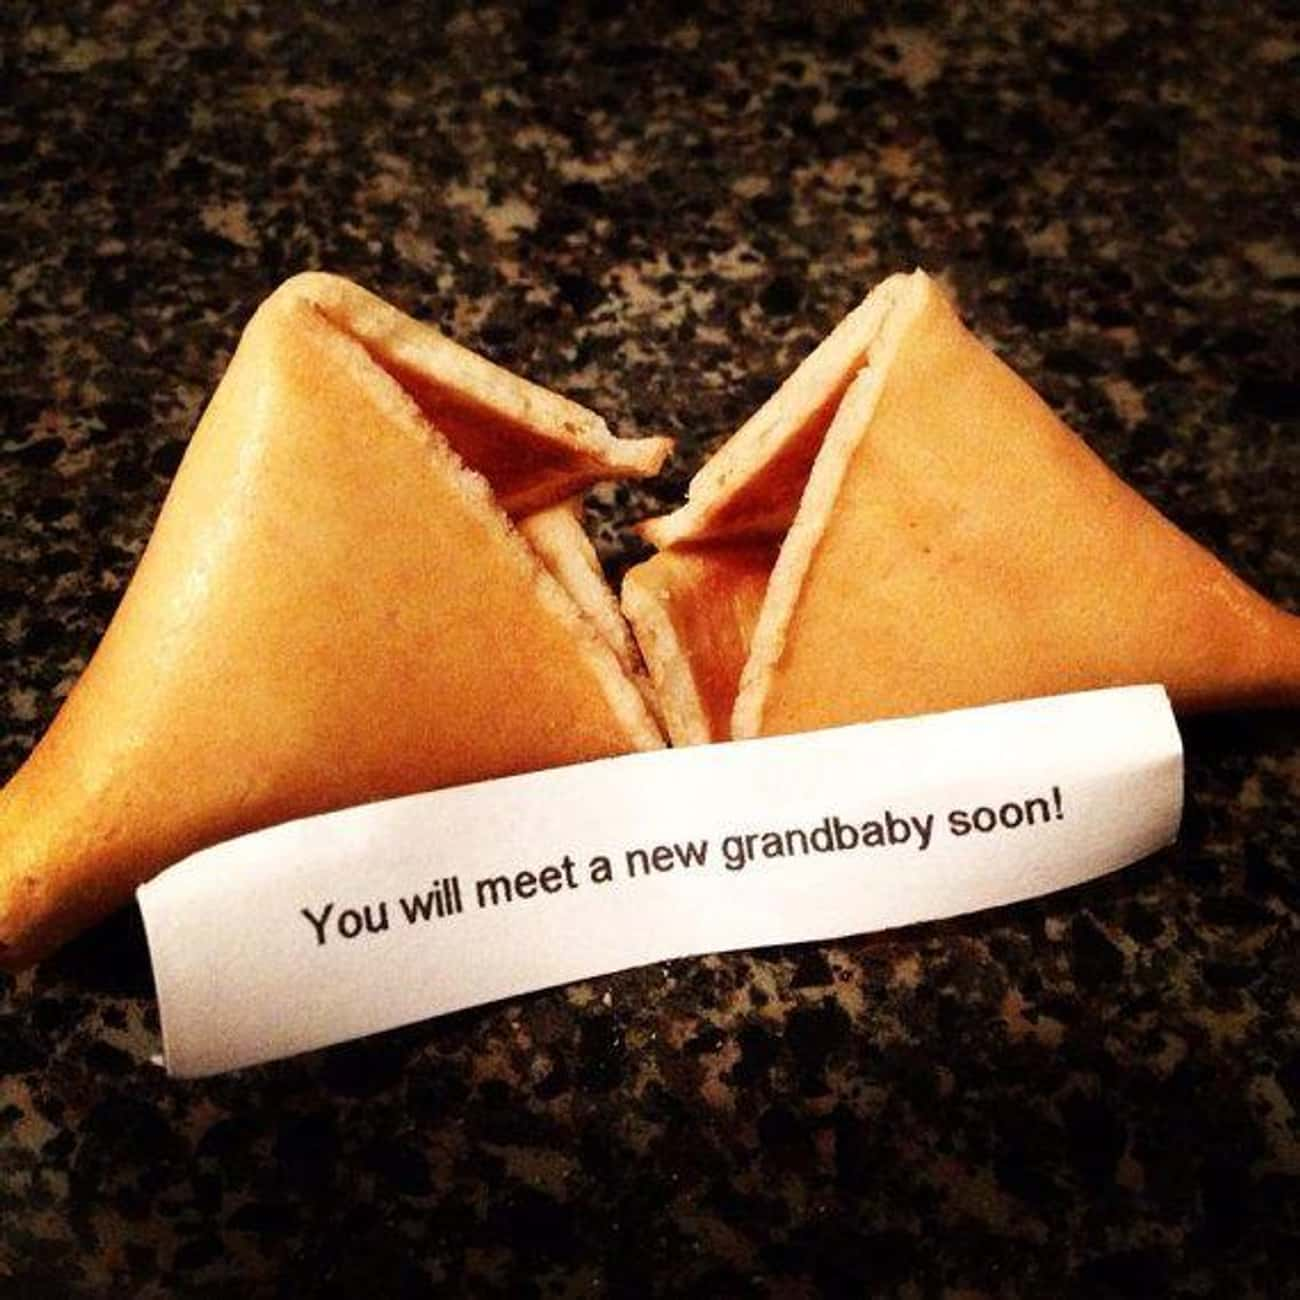 How's This For Good Fortune? is listed (or ranked) 2 on the list 14 Creative Pregnancy Announcements